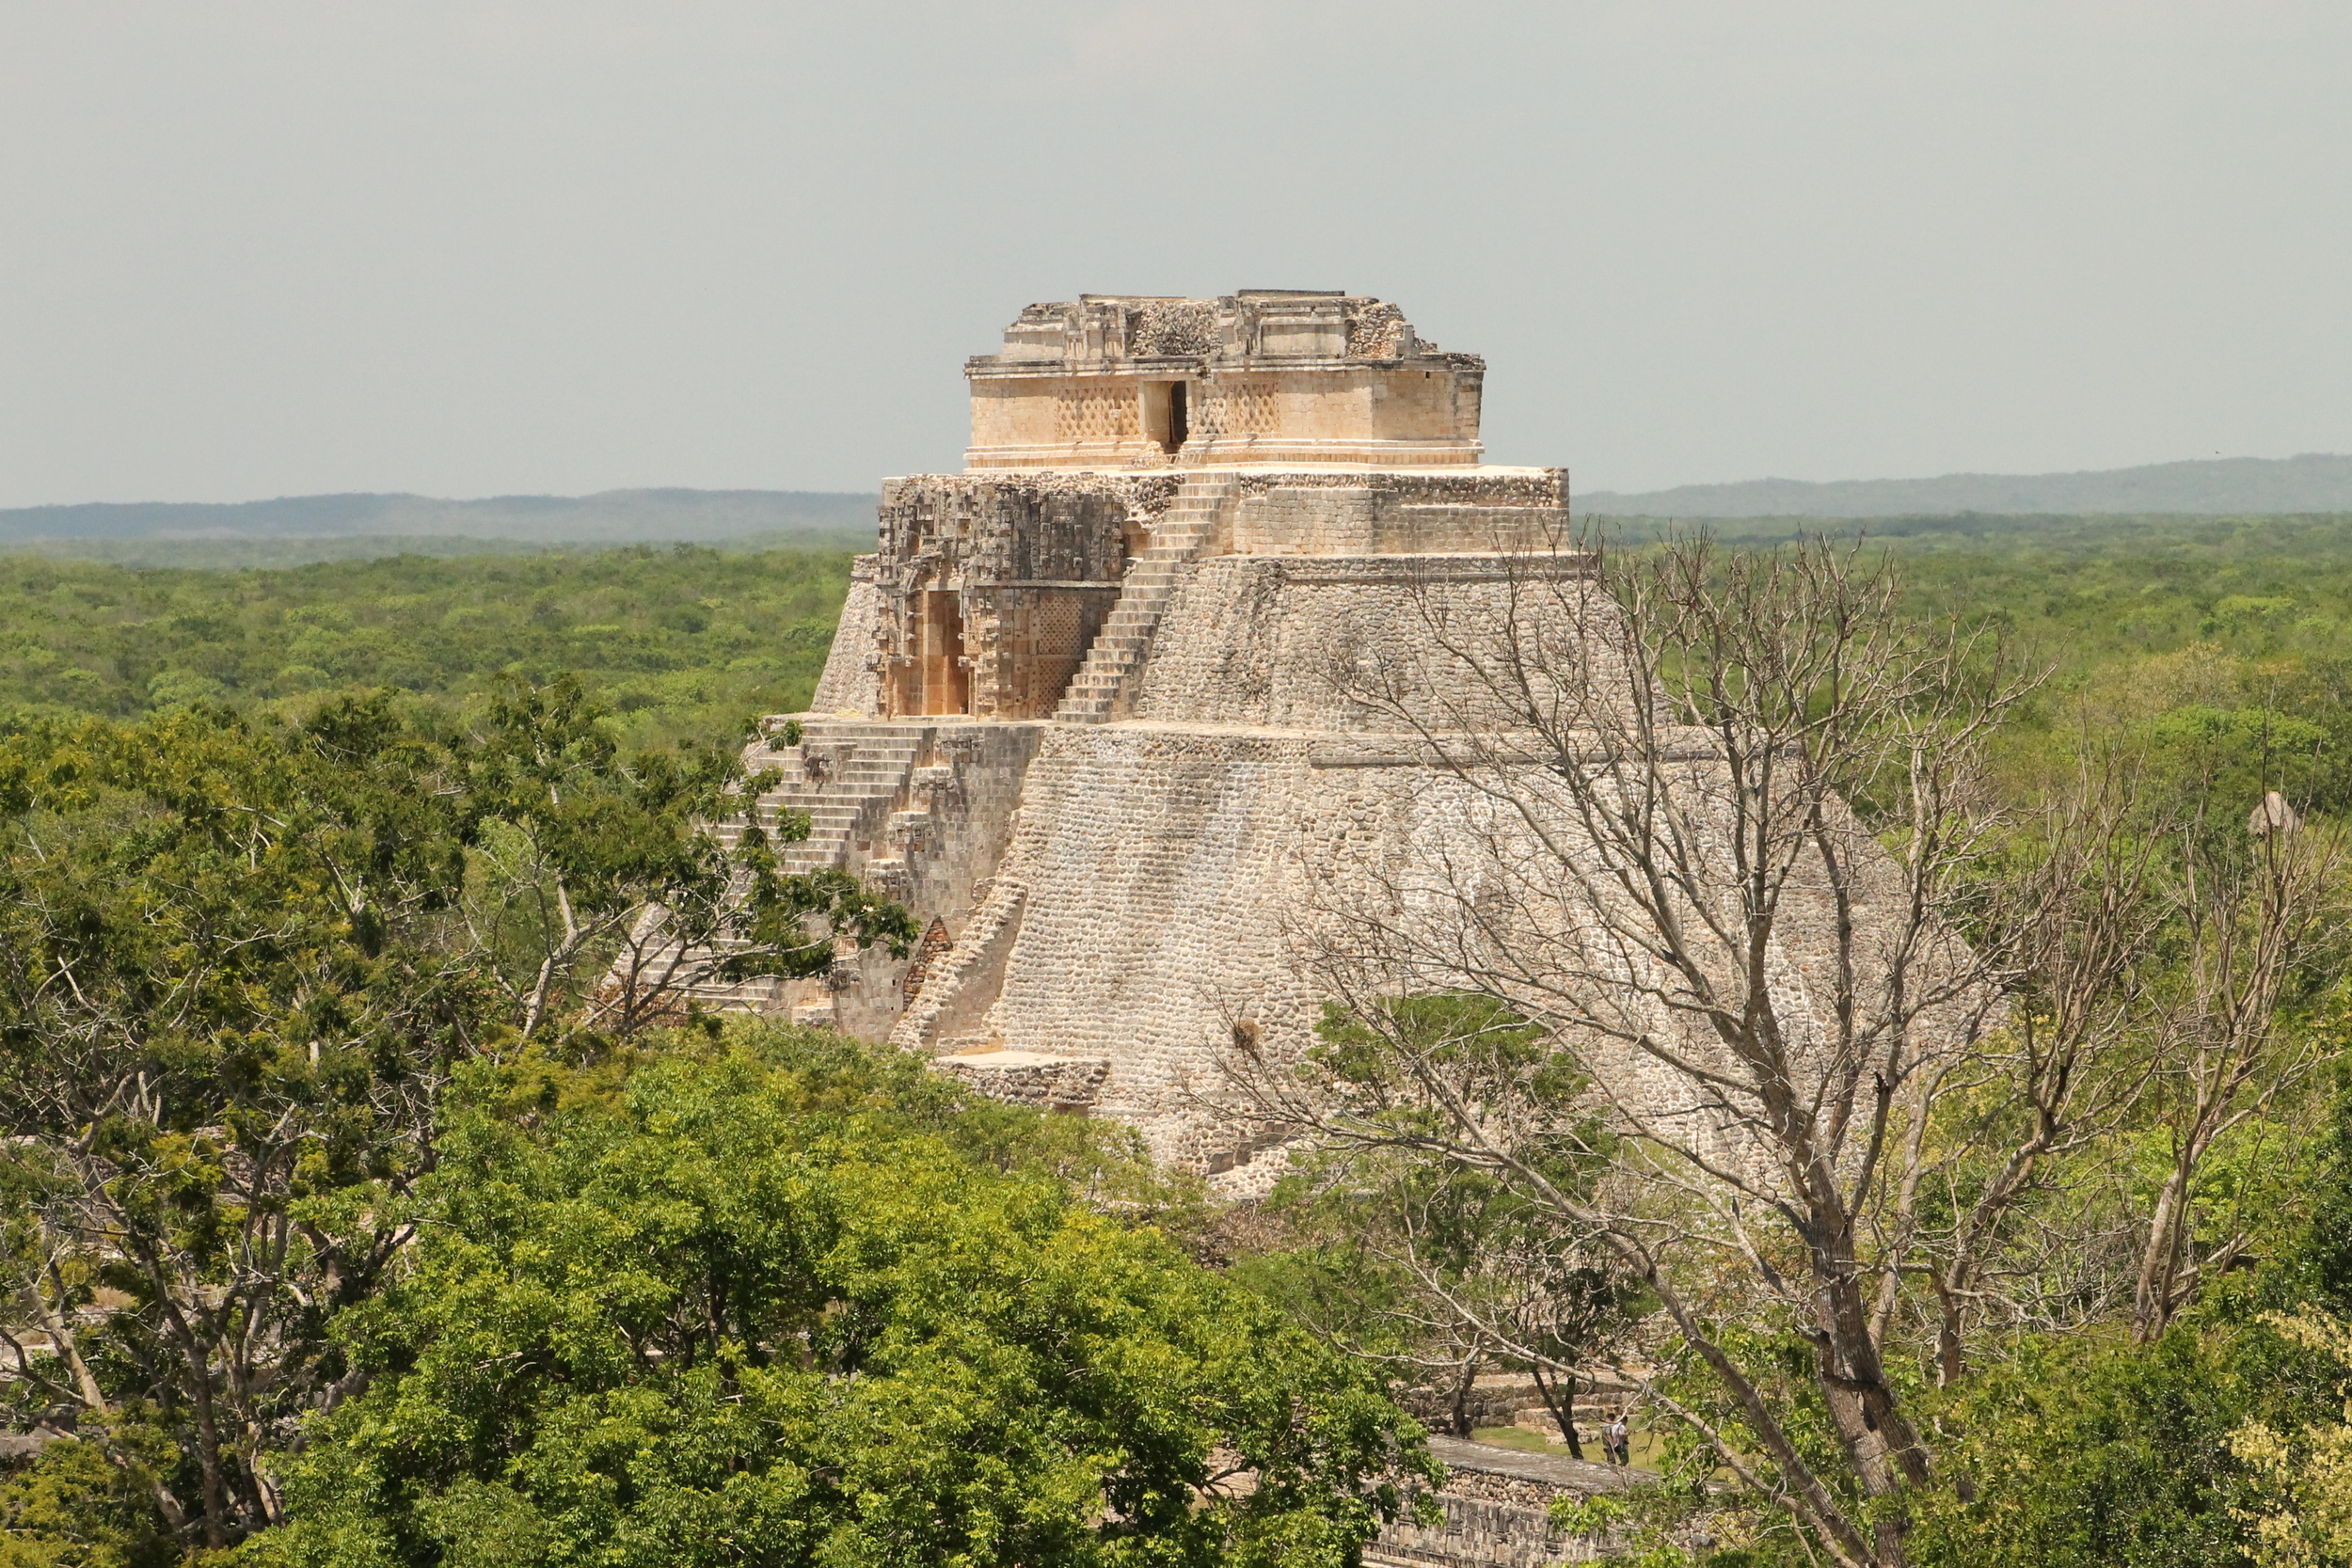 The Temple of the Magician, Uxmal, Yucatan, Mexico - photo by R Hollmann